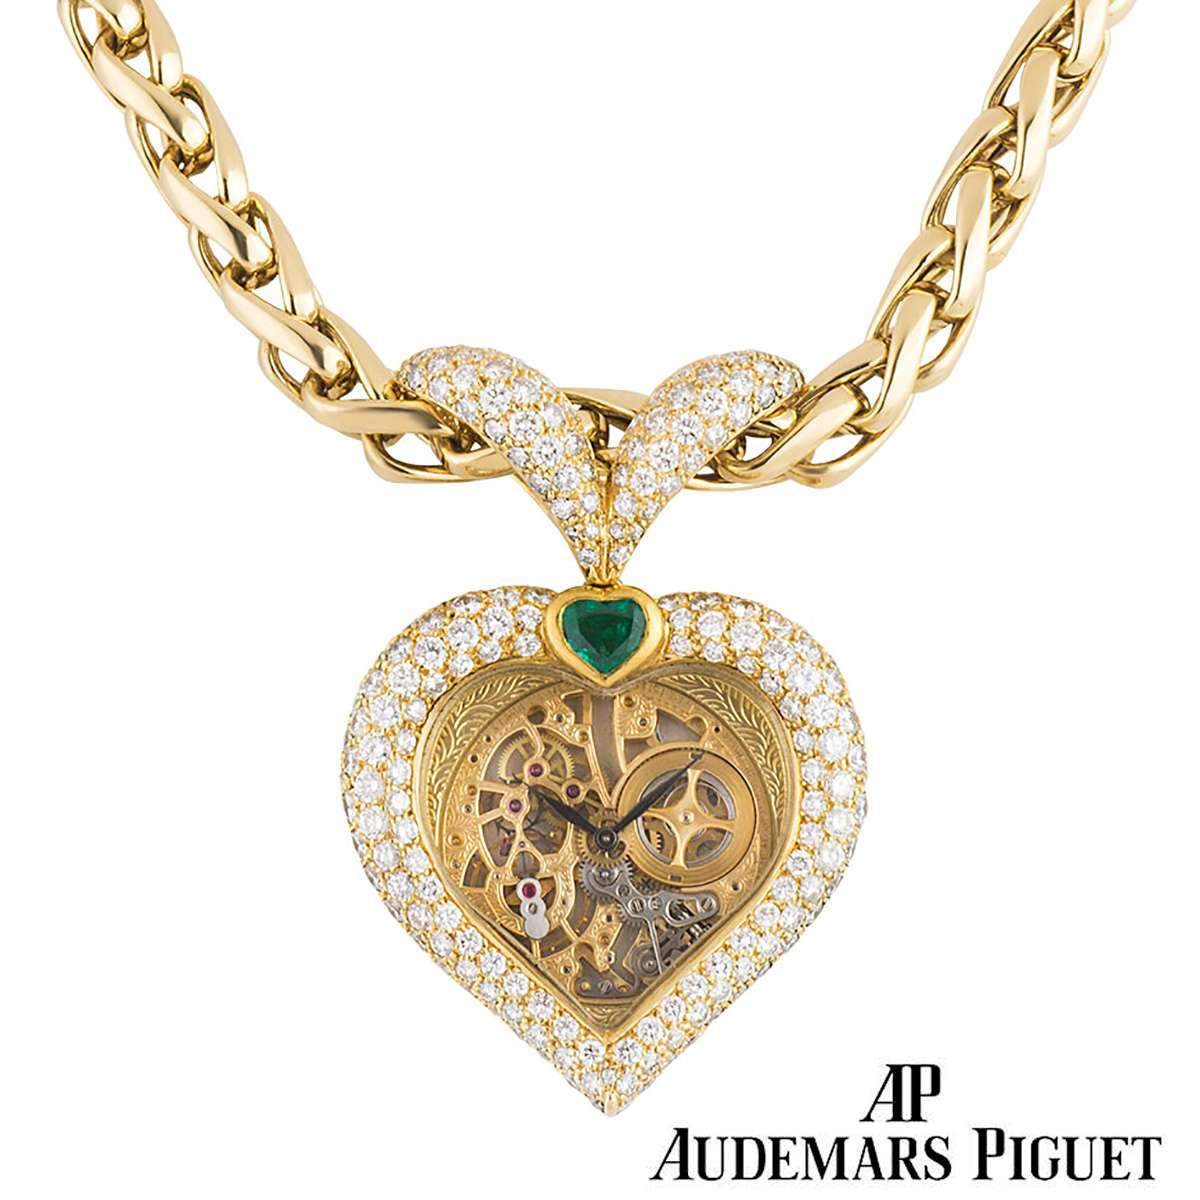 Audemars Piguet Yellow Gold Diamond and Emerald Pendant Watch